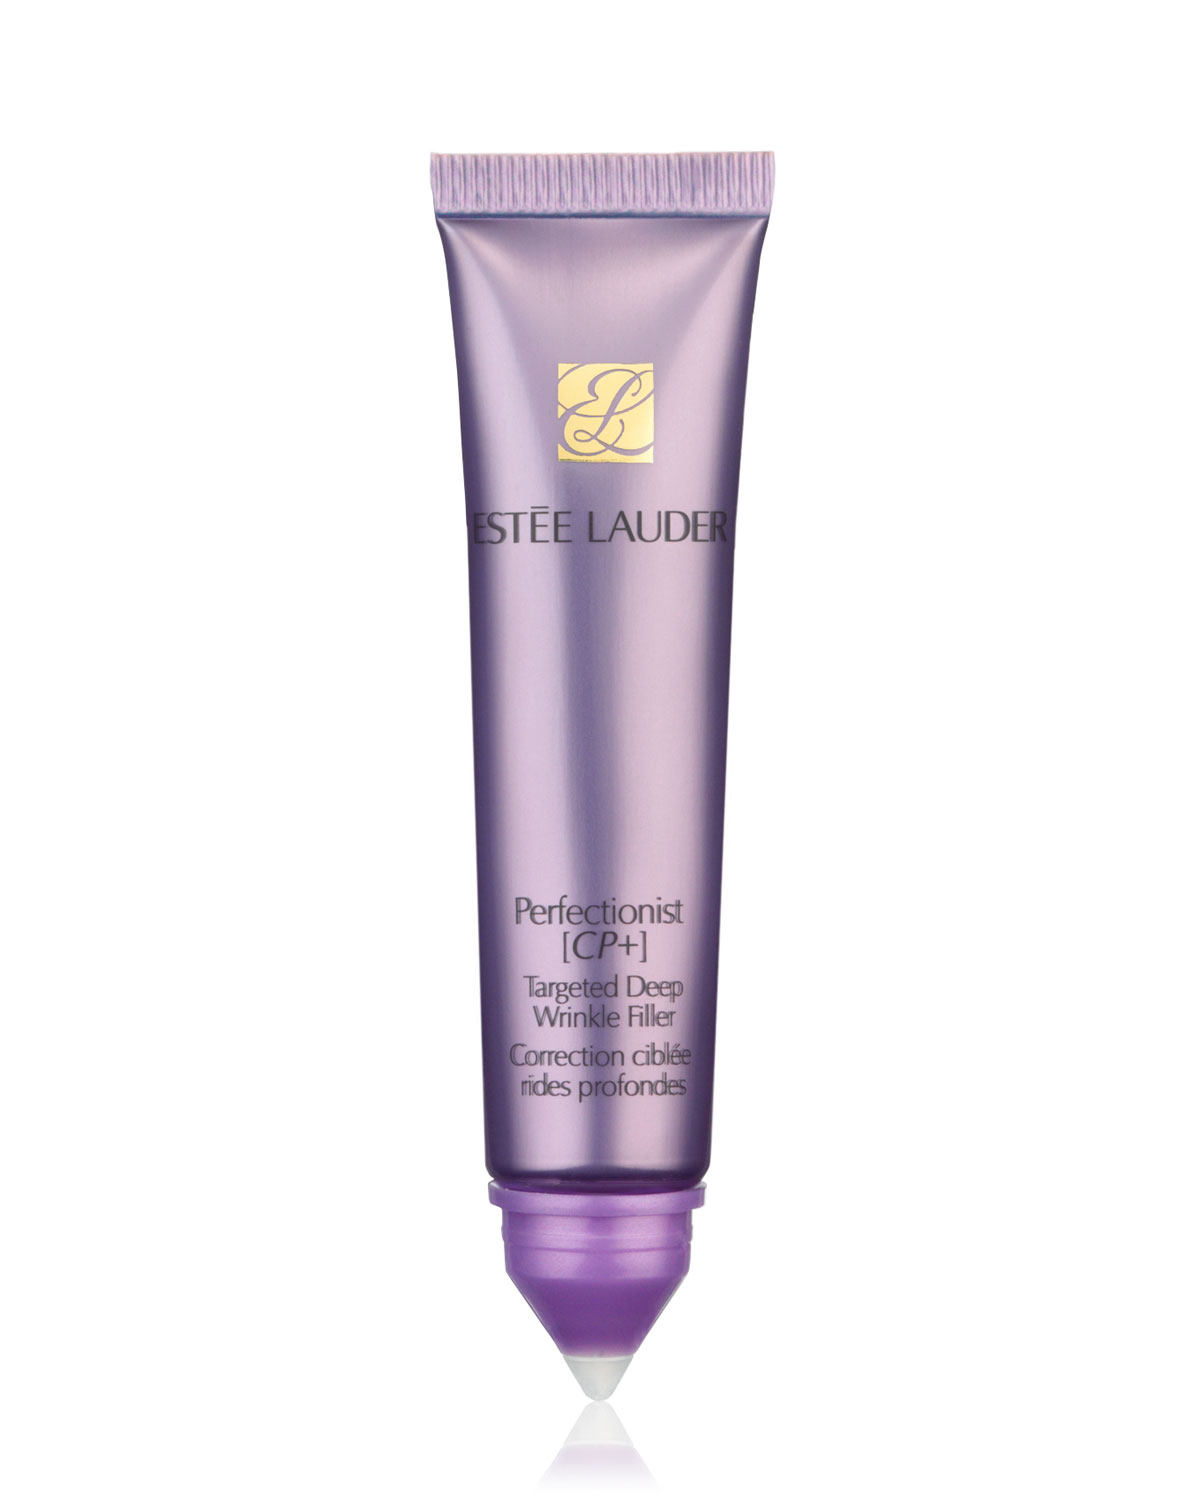 Estee Lauder Perfectionist Cp Targeted Deep Wrinkle Filler Lifting